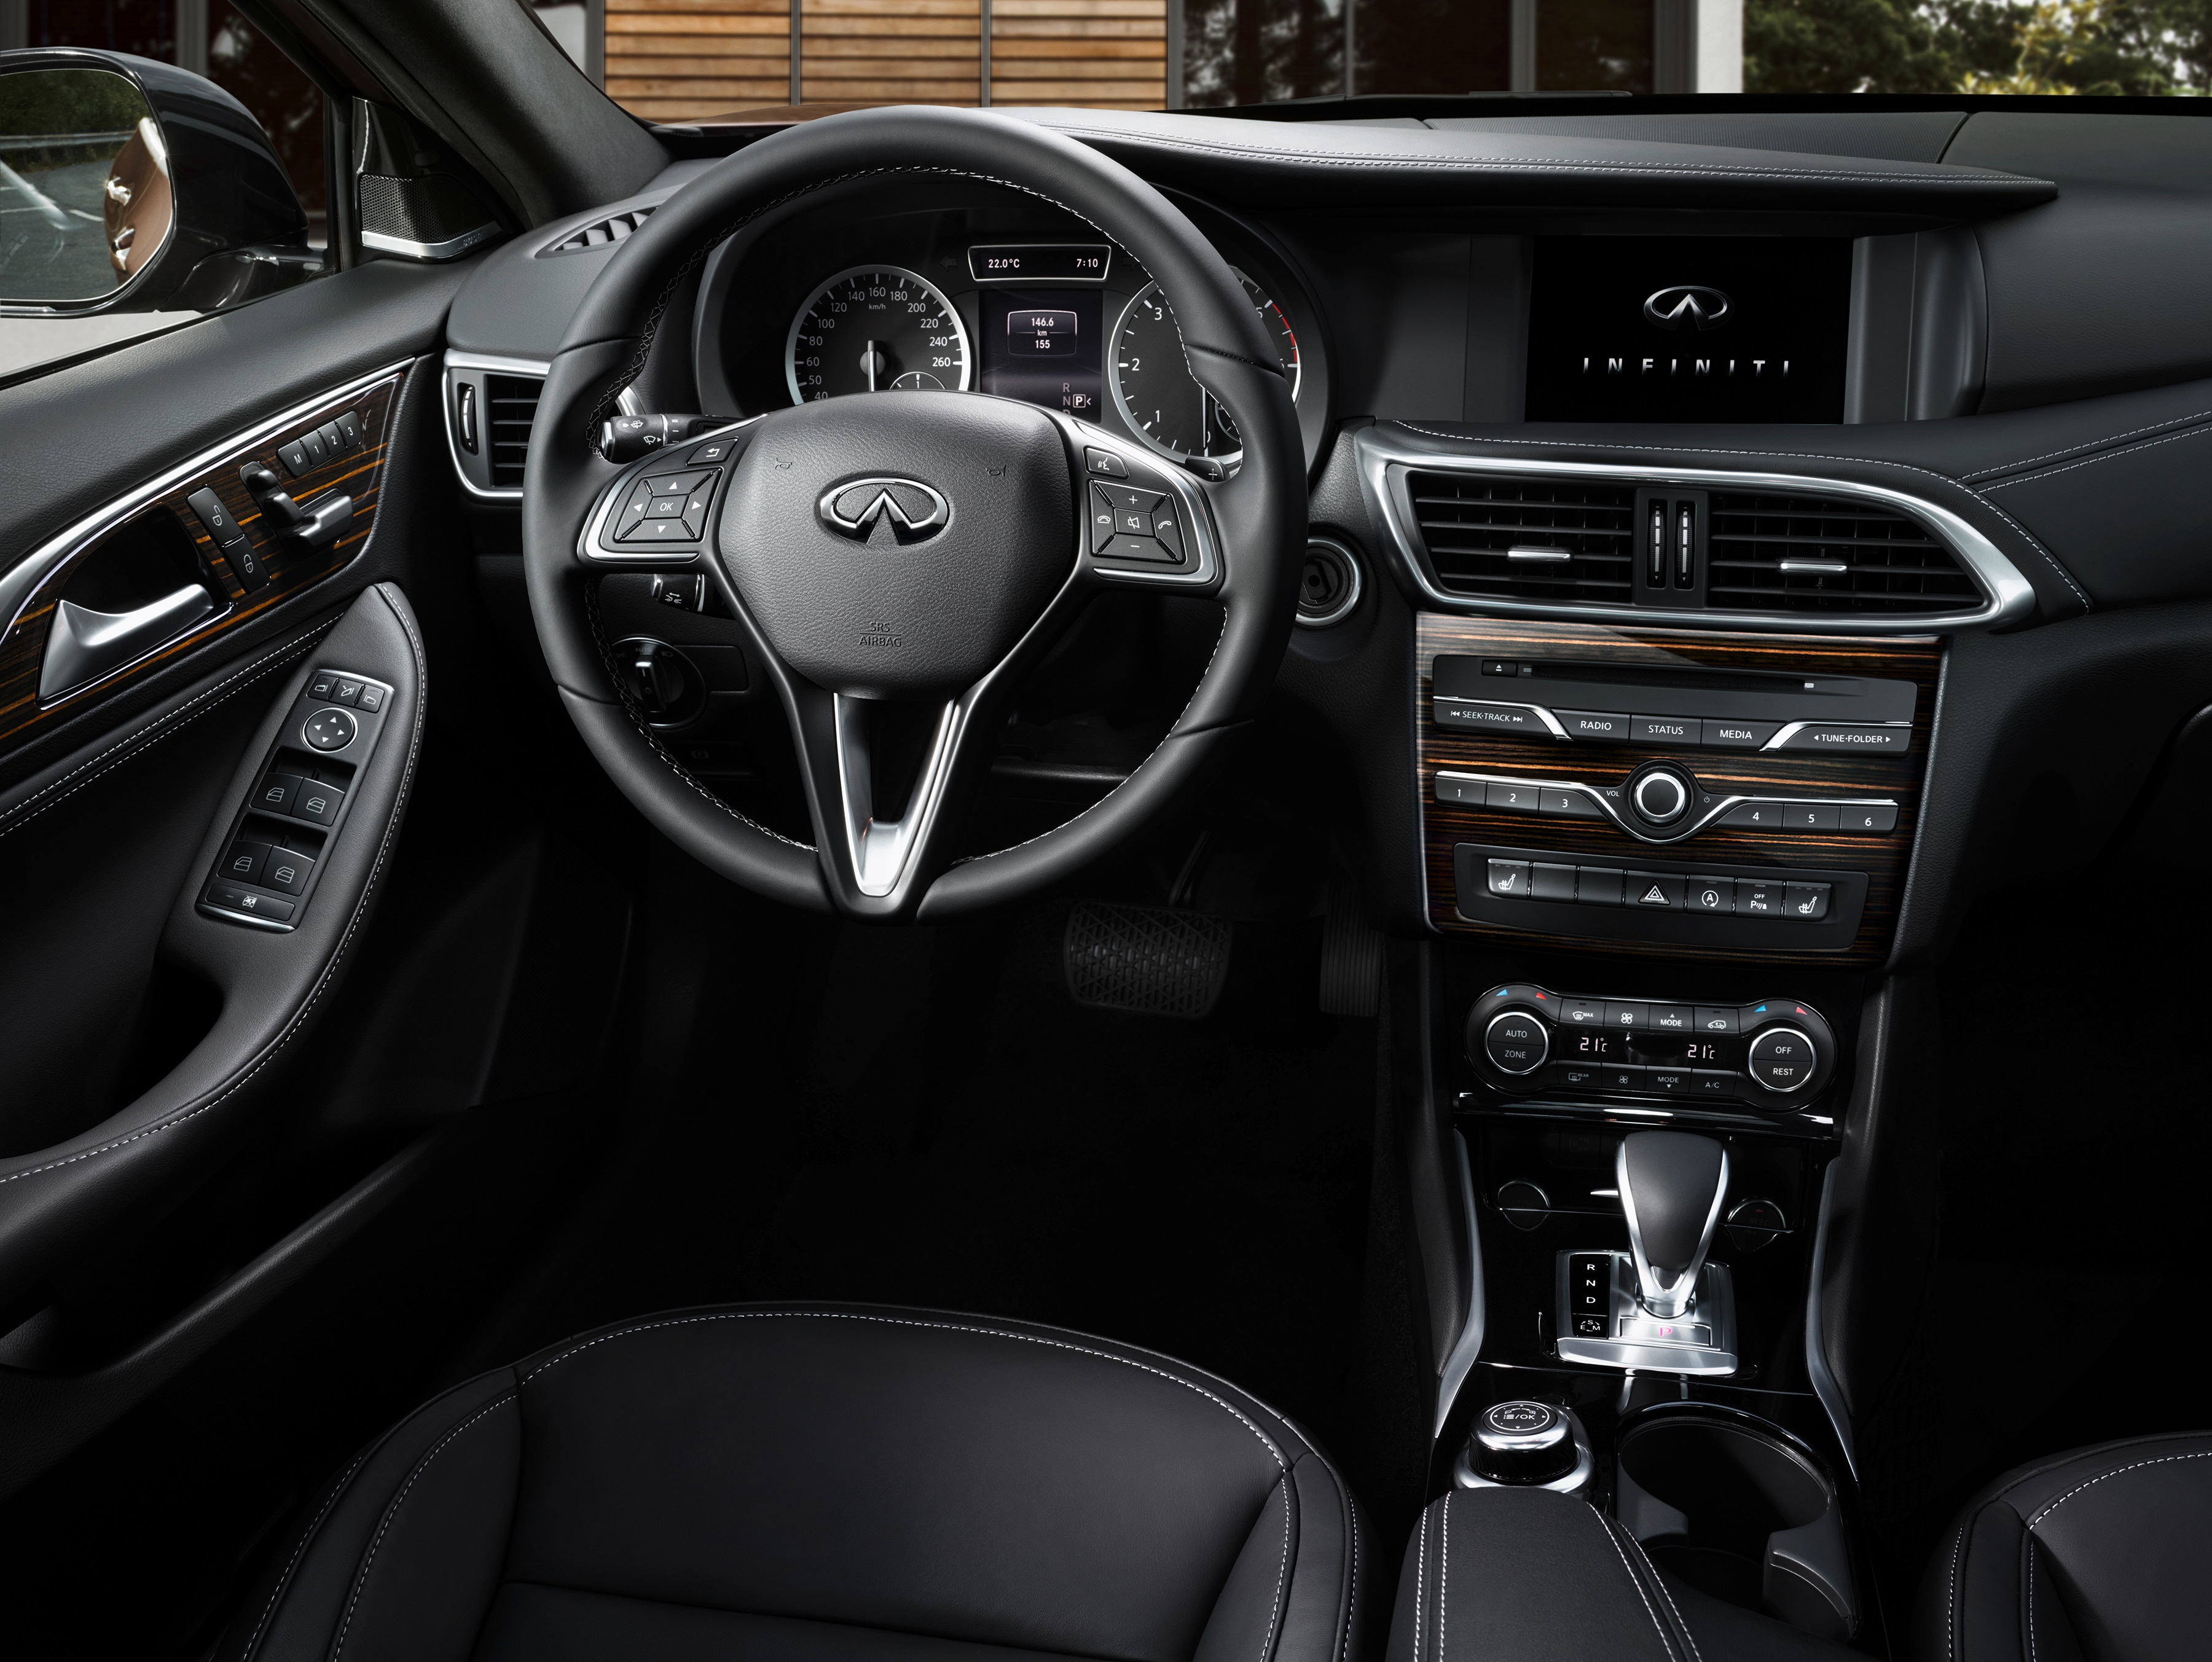 infinity lease photo infiniti specifications interior and technical